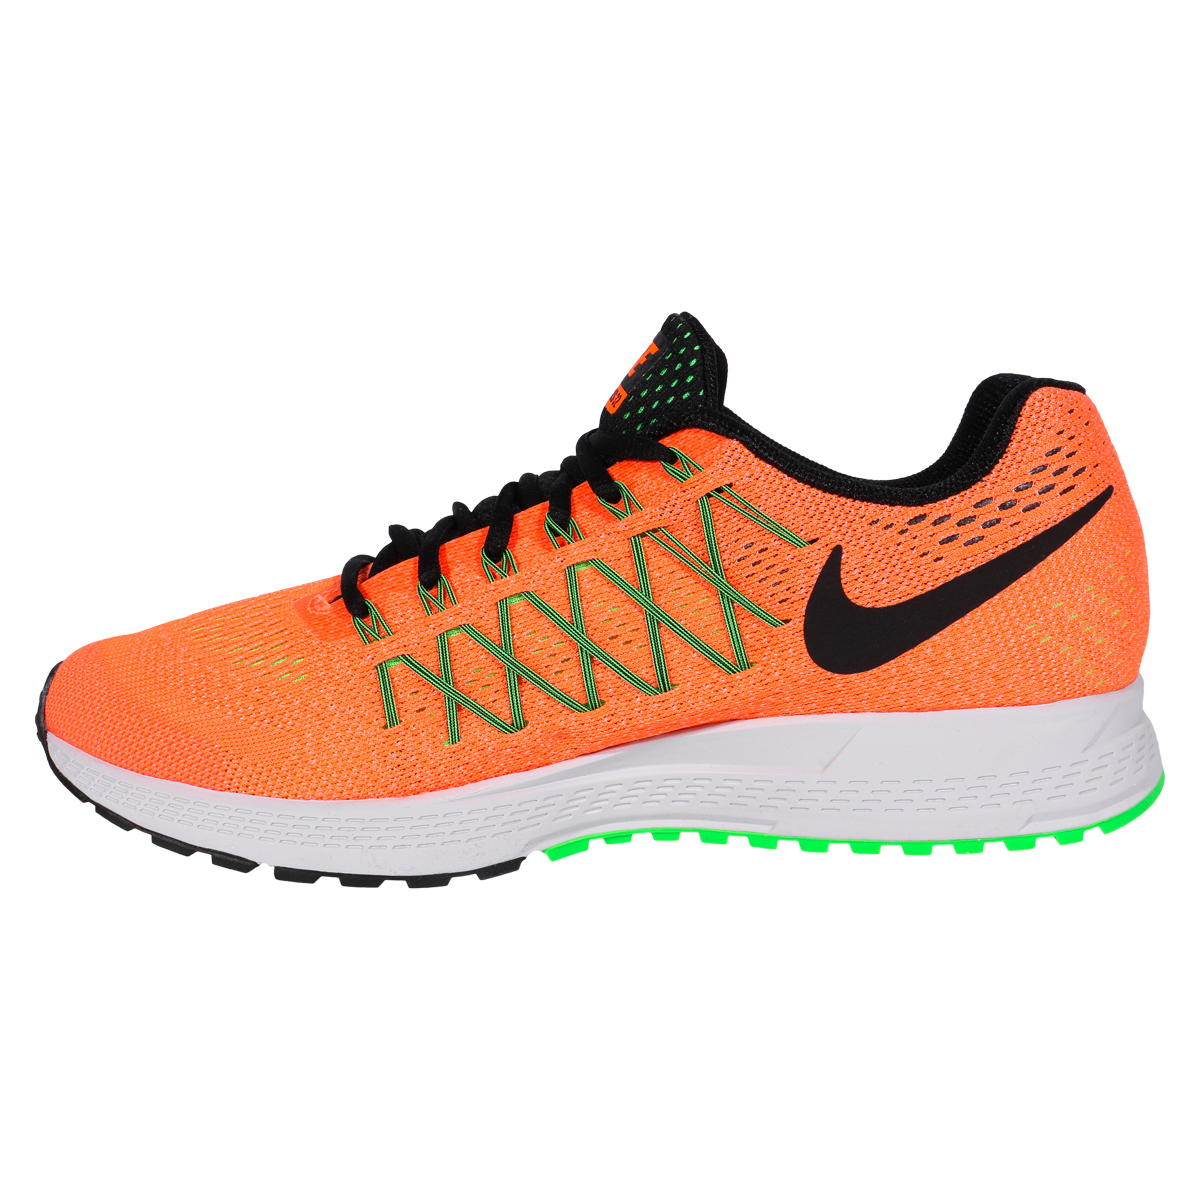 nike air zoom pegasus 32 men 39 s training shoes total orange ghost green black. Black Bedroom Furniture Sets. Home Design Ideas